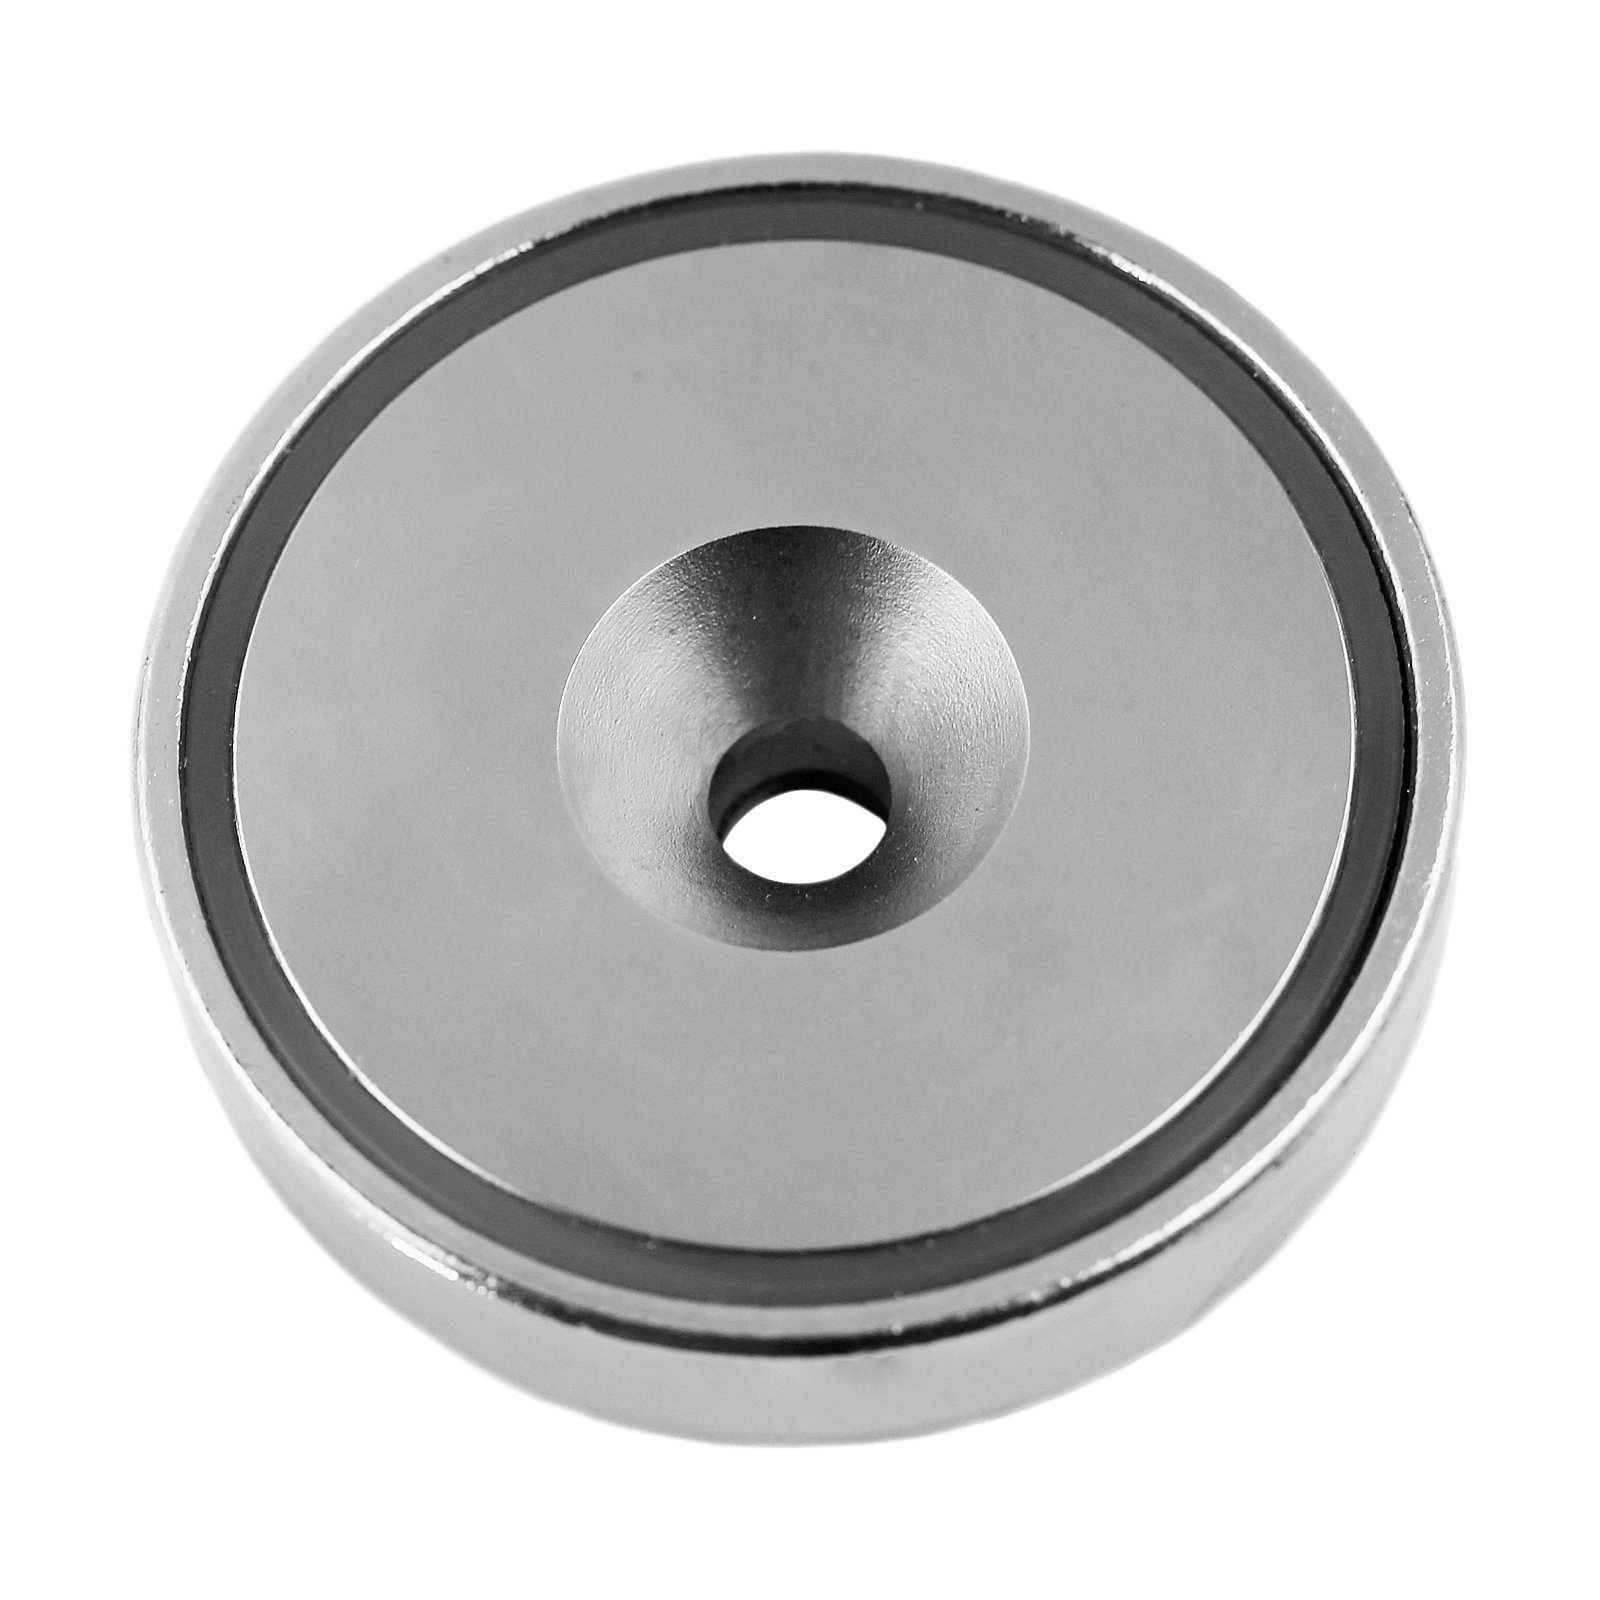 Applied Magnets 1-pc, 3'' Strong NdFeB Neodymium Cup Magnet with Countersunk Hole.